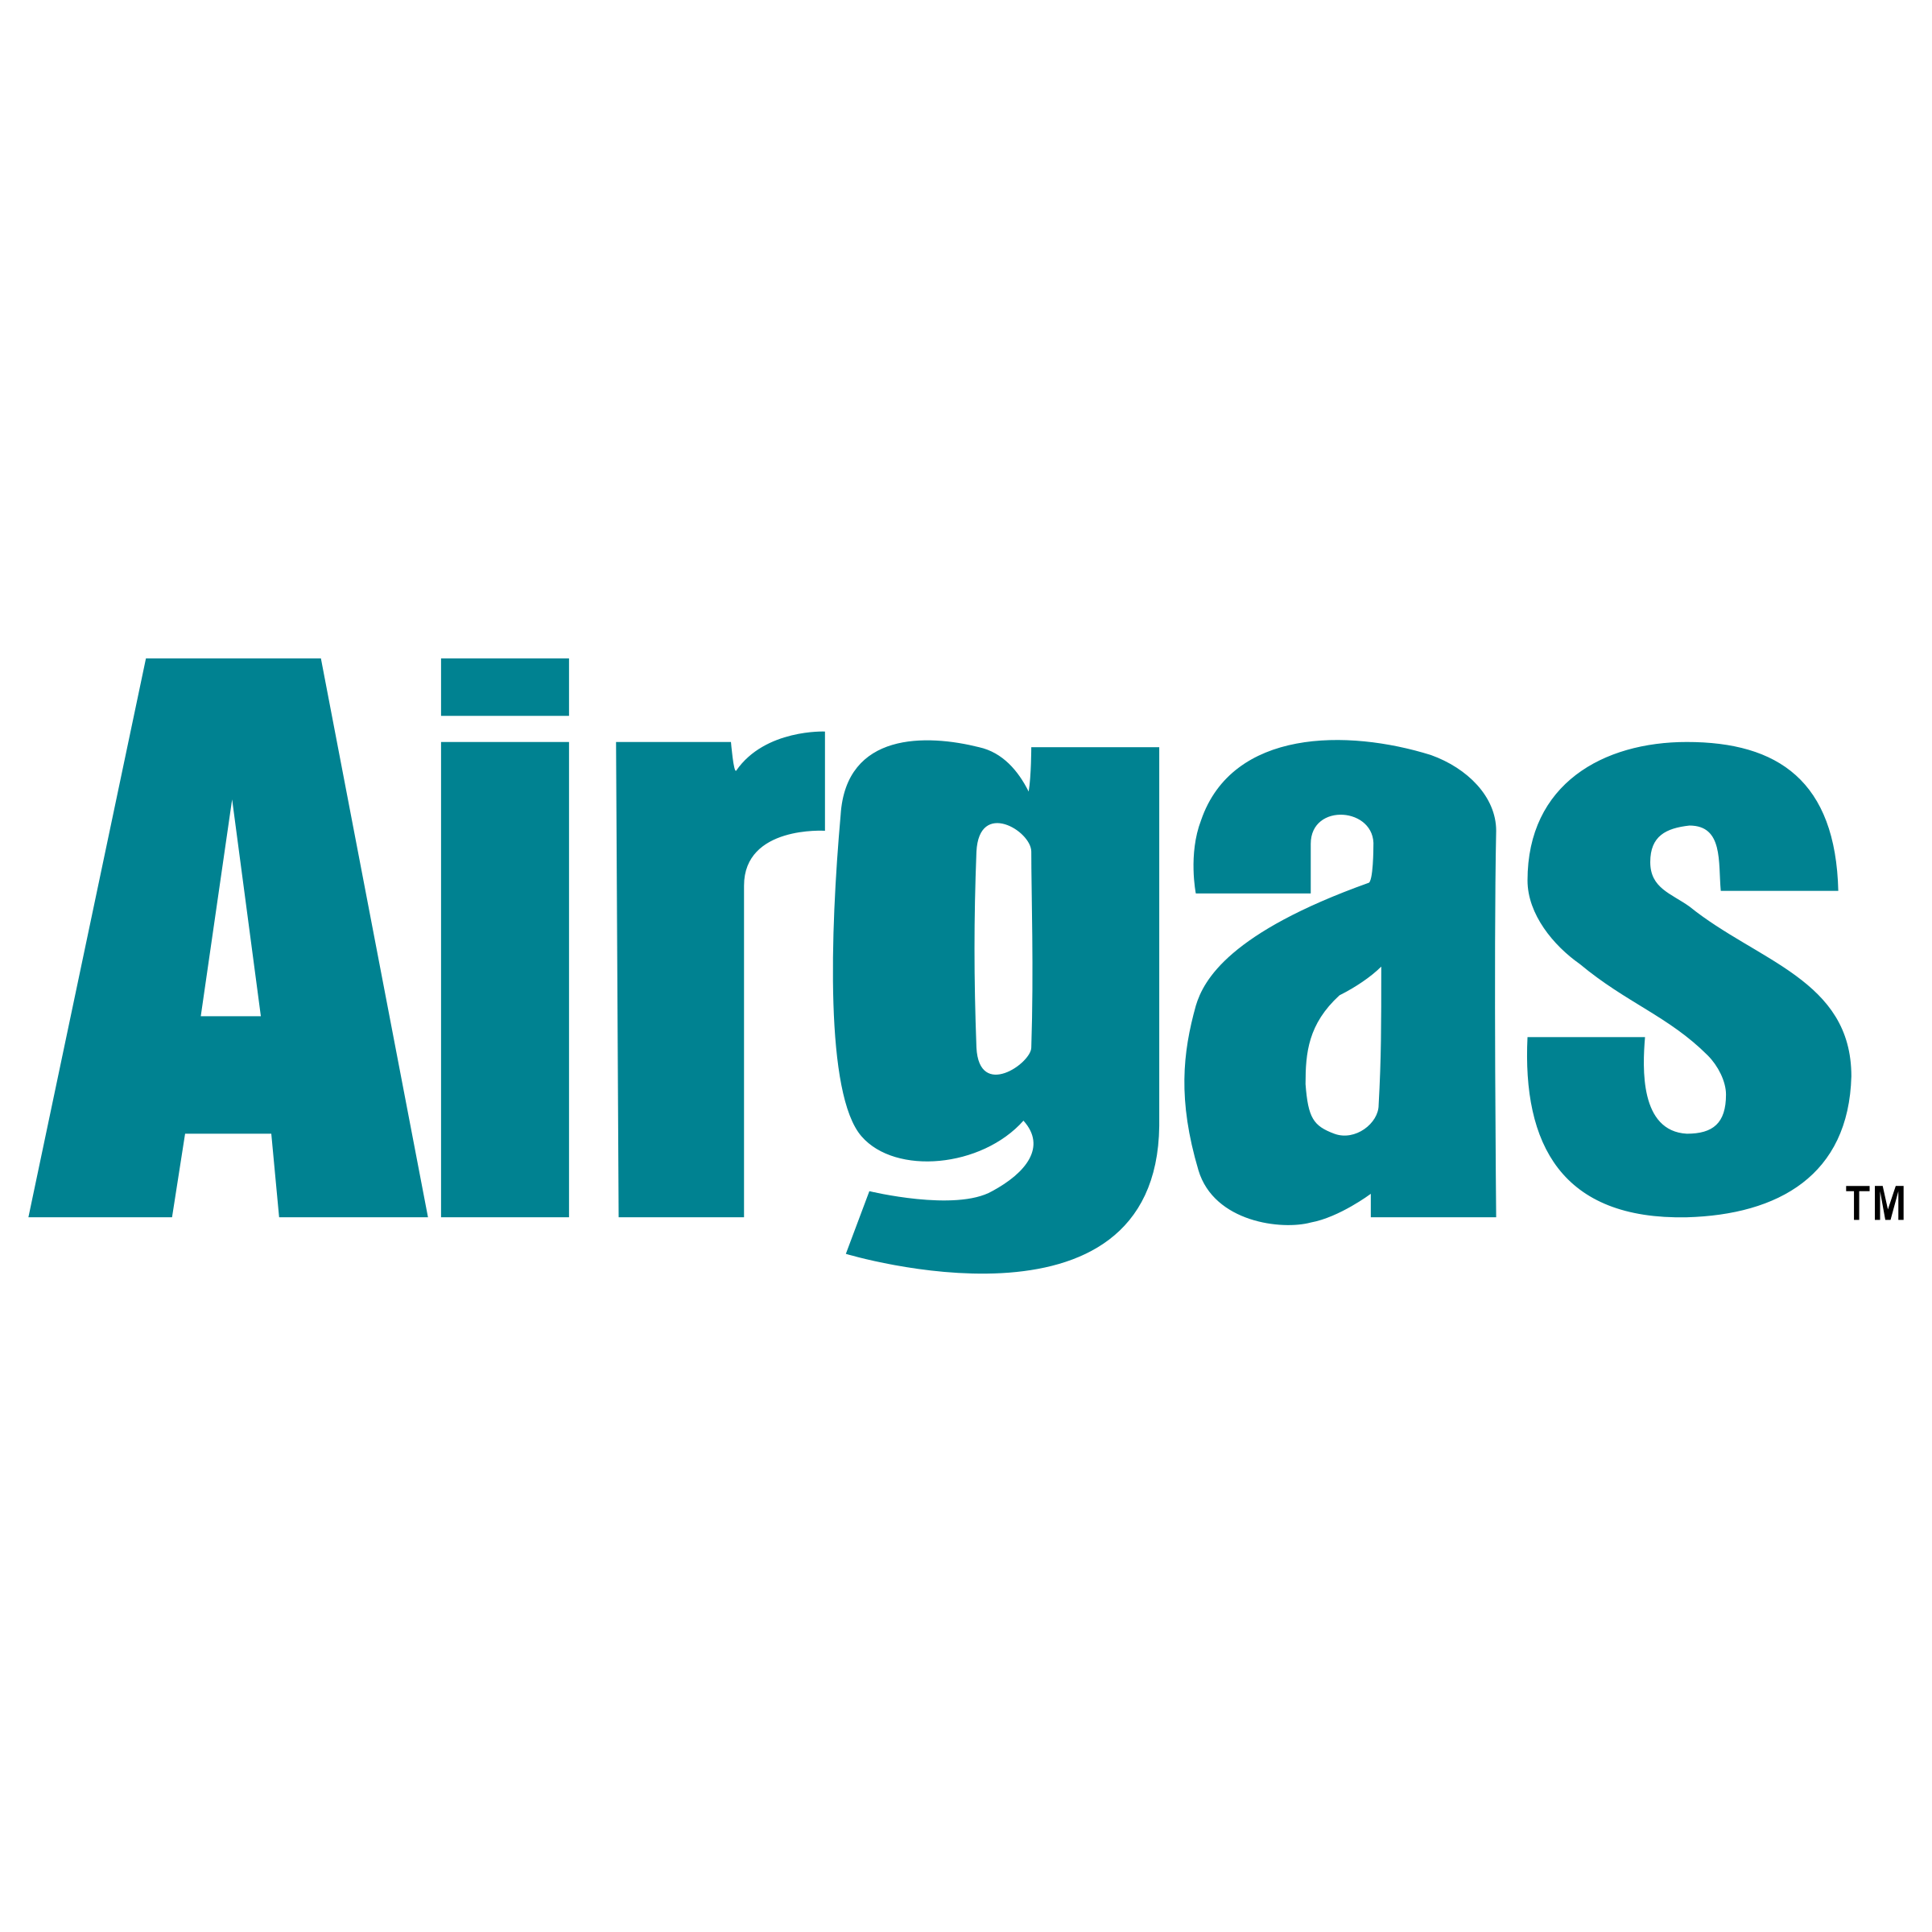 airgas@2x.png